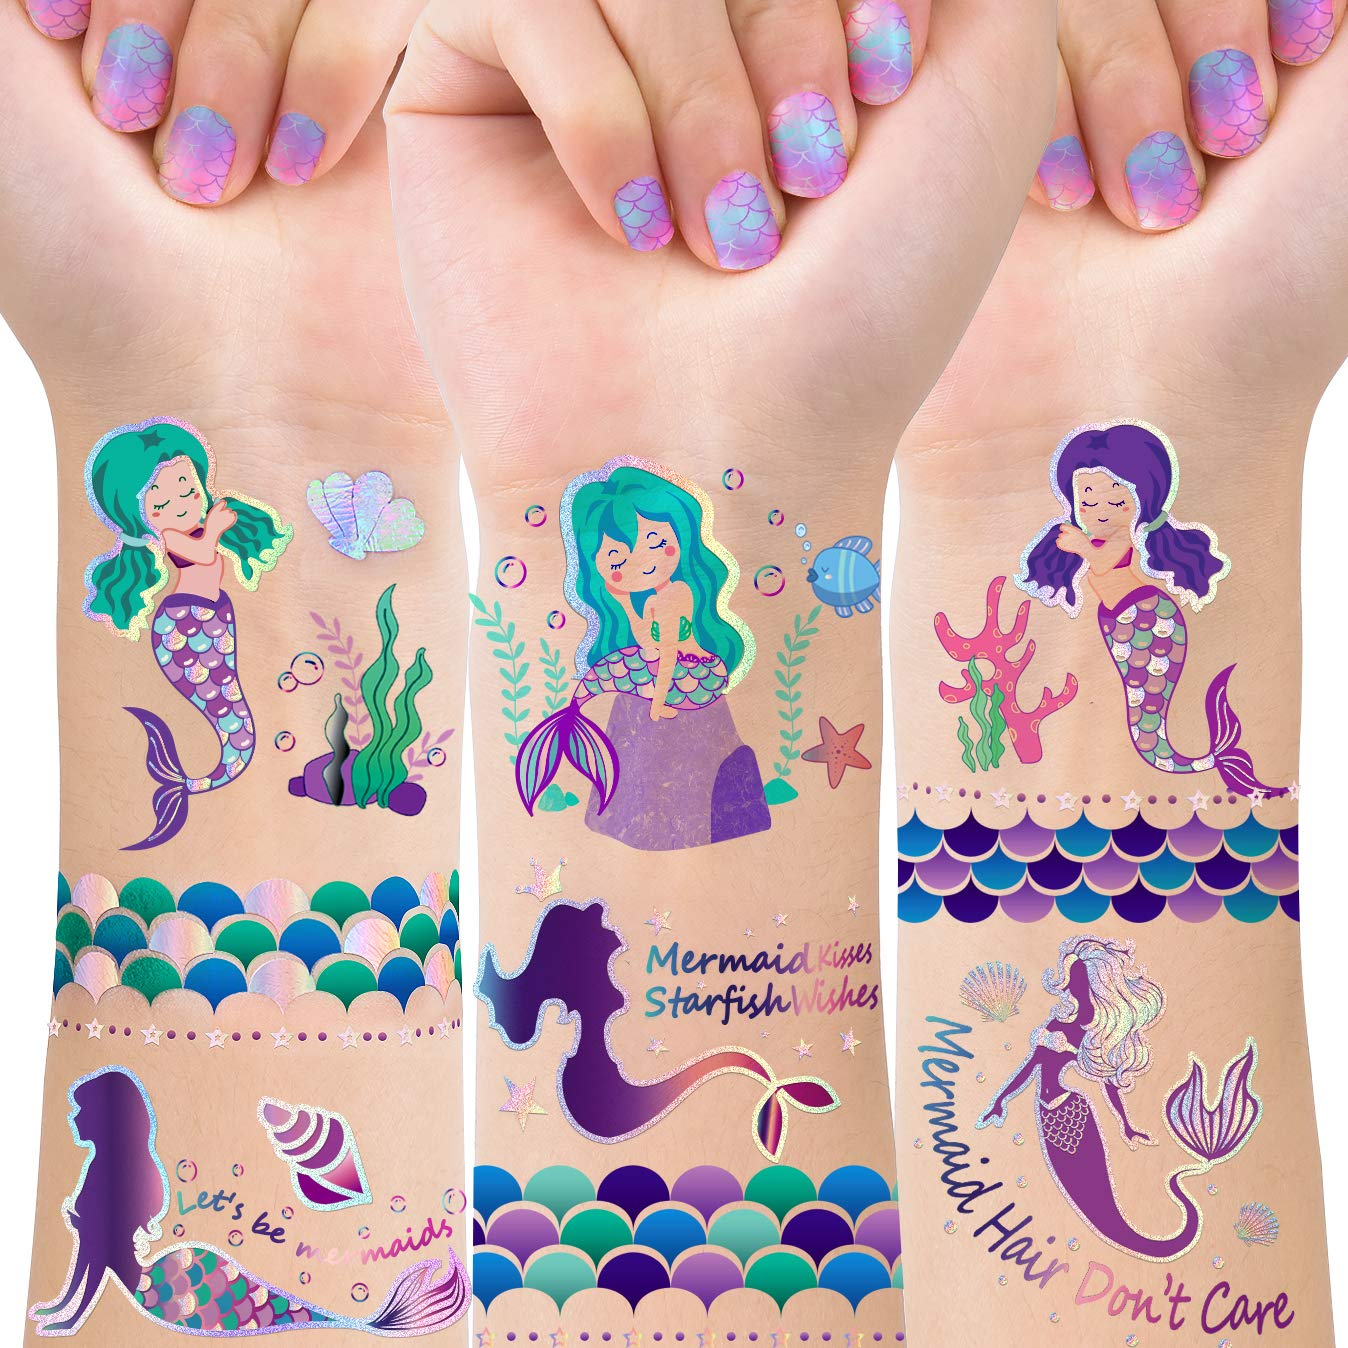 TMCCE Mermaid Party Supplies Mermaid Tattoos-Mermaid Birthday Party Favors-4 Sheet Glitter More Than 32 Styles Mermaid Tail Tattoos Party Decoration